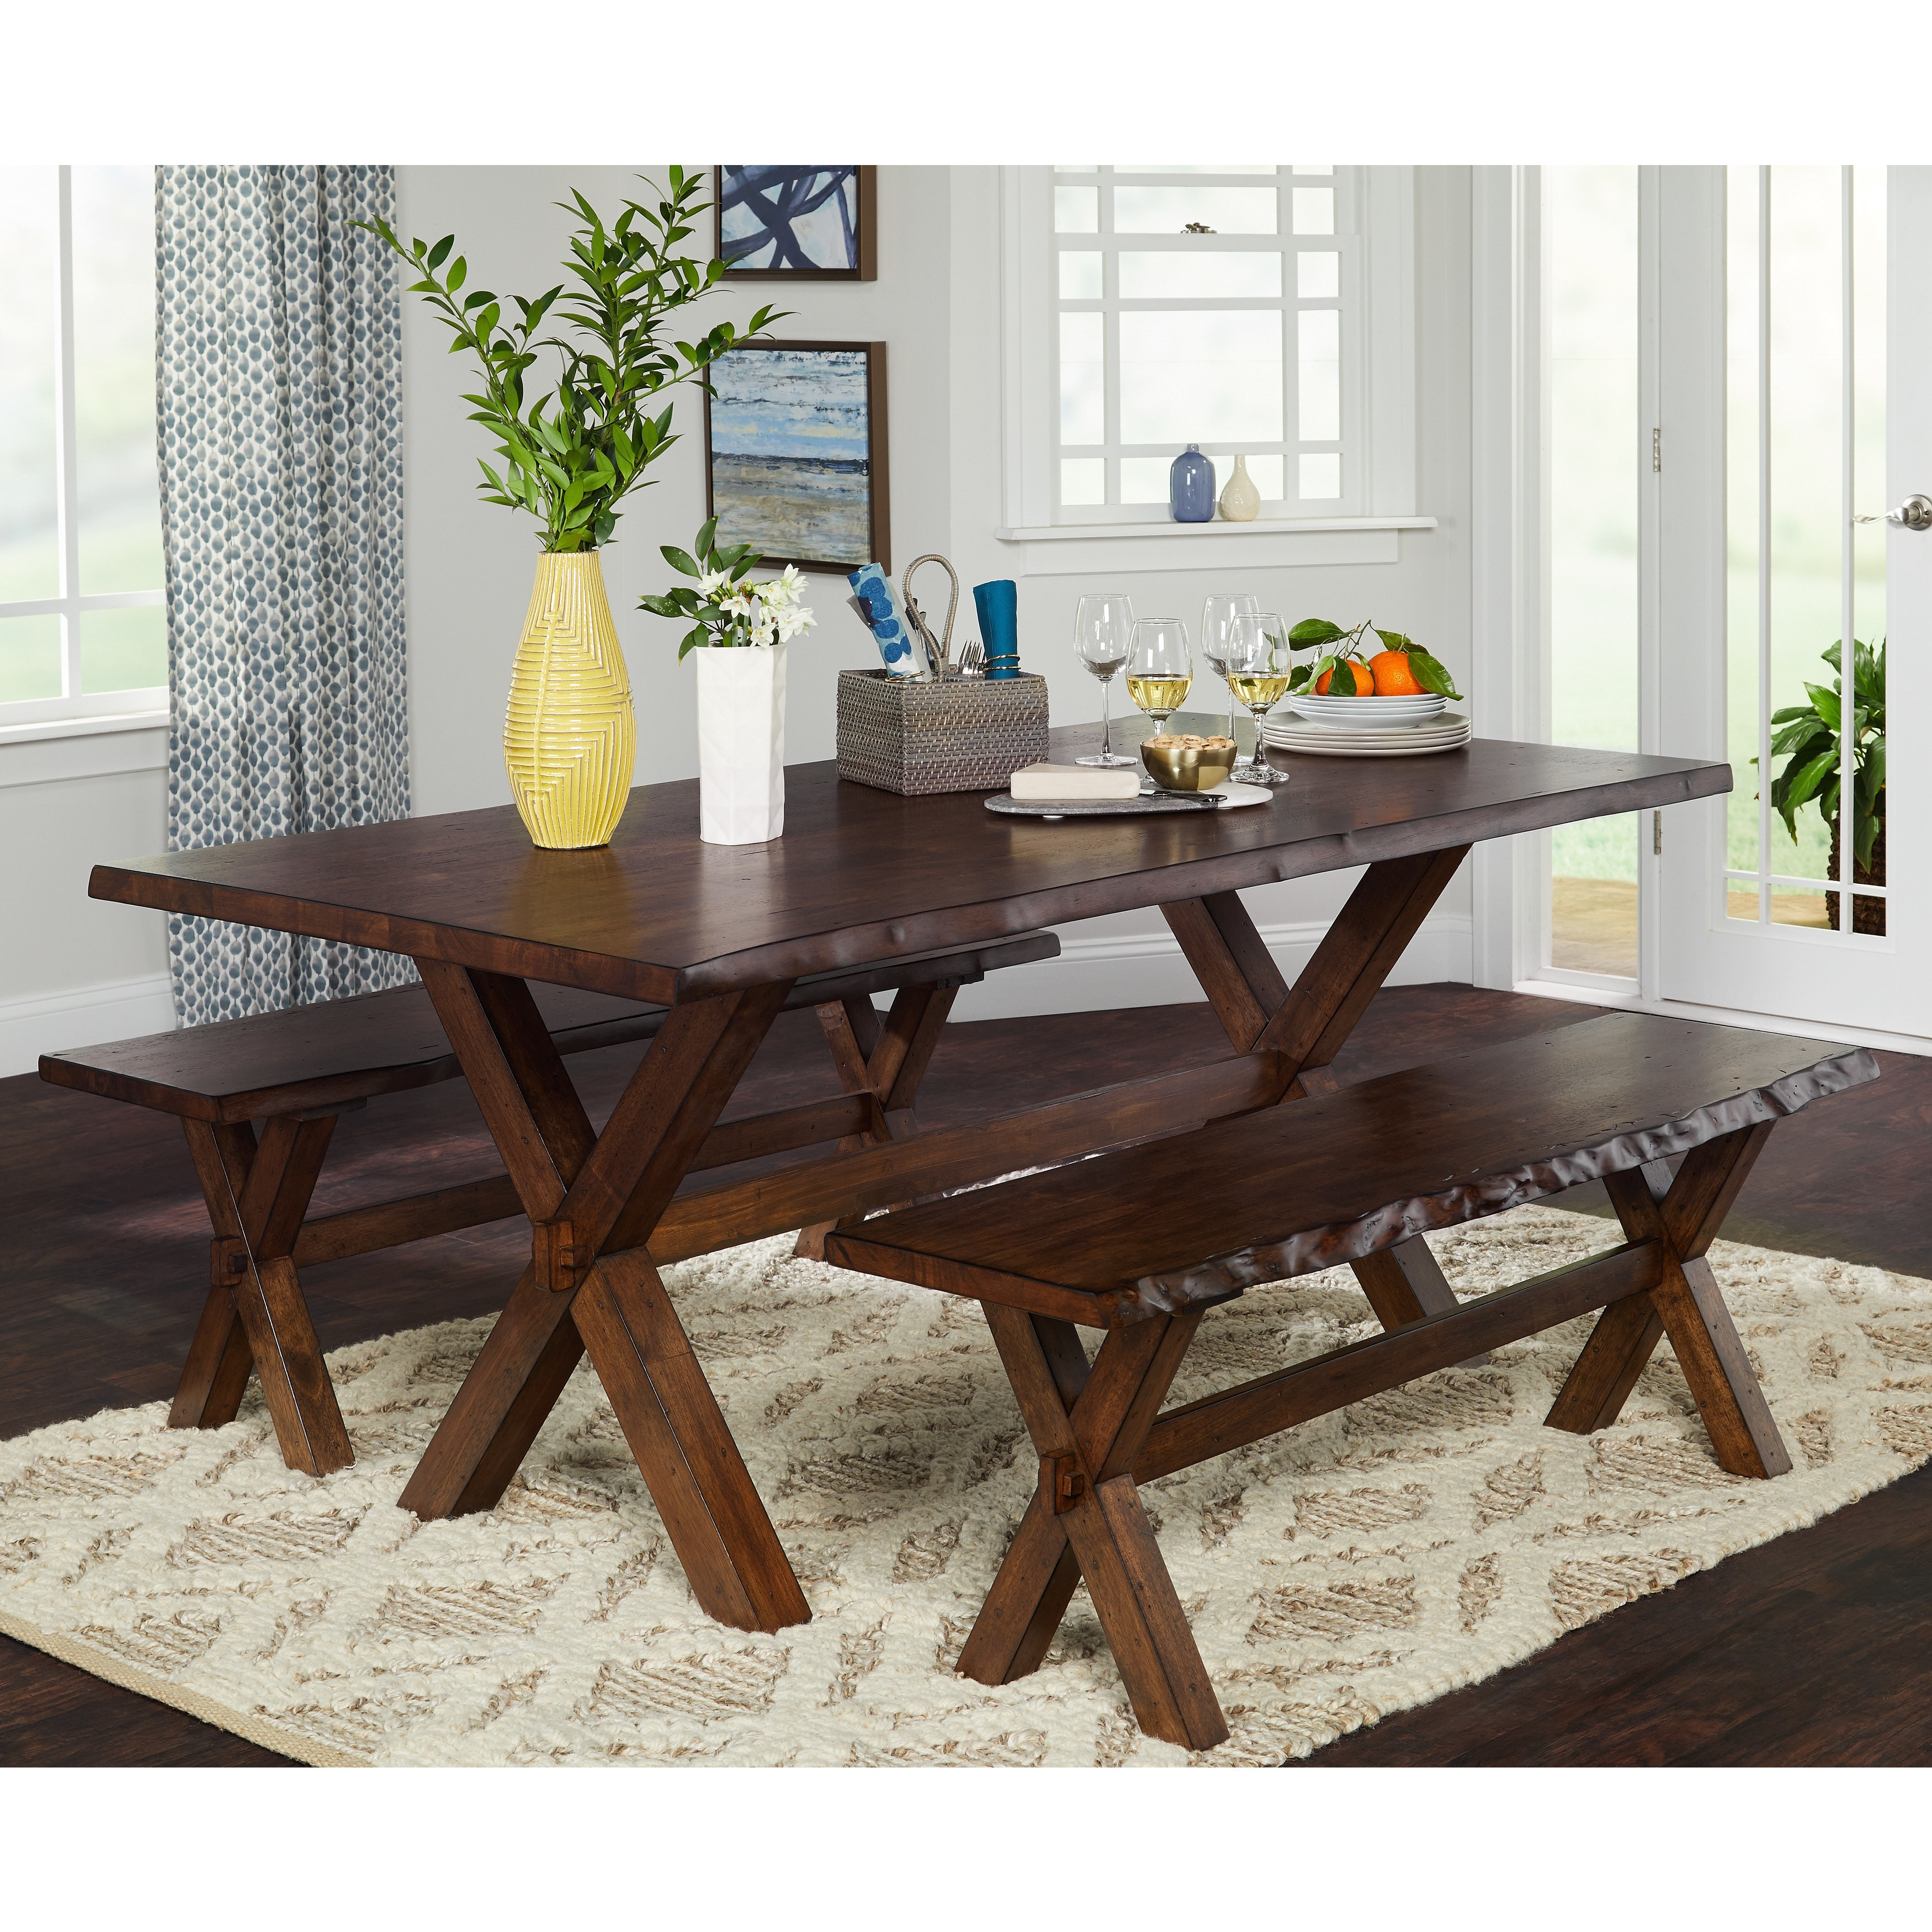 Remarkable Simple Living 3 Piece Mandeville Live Edge Solid Wood Dining And Bench Set Machost Co Dining Chair Design Ideas Machostcouk